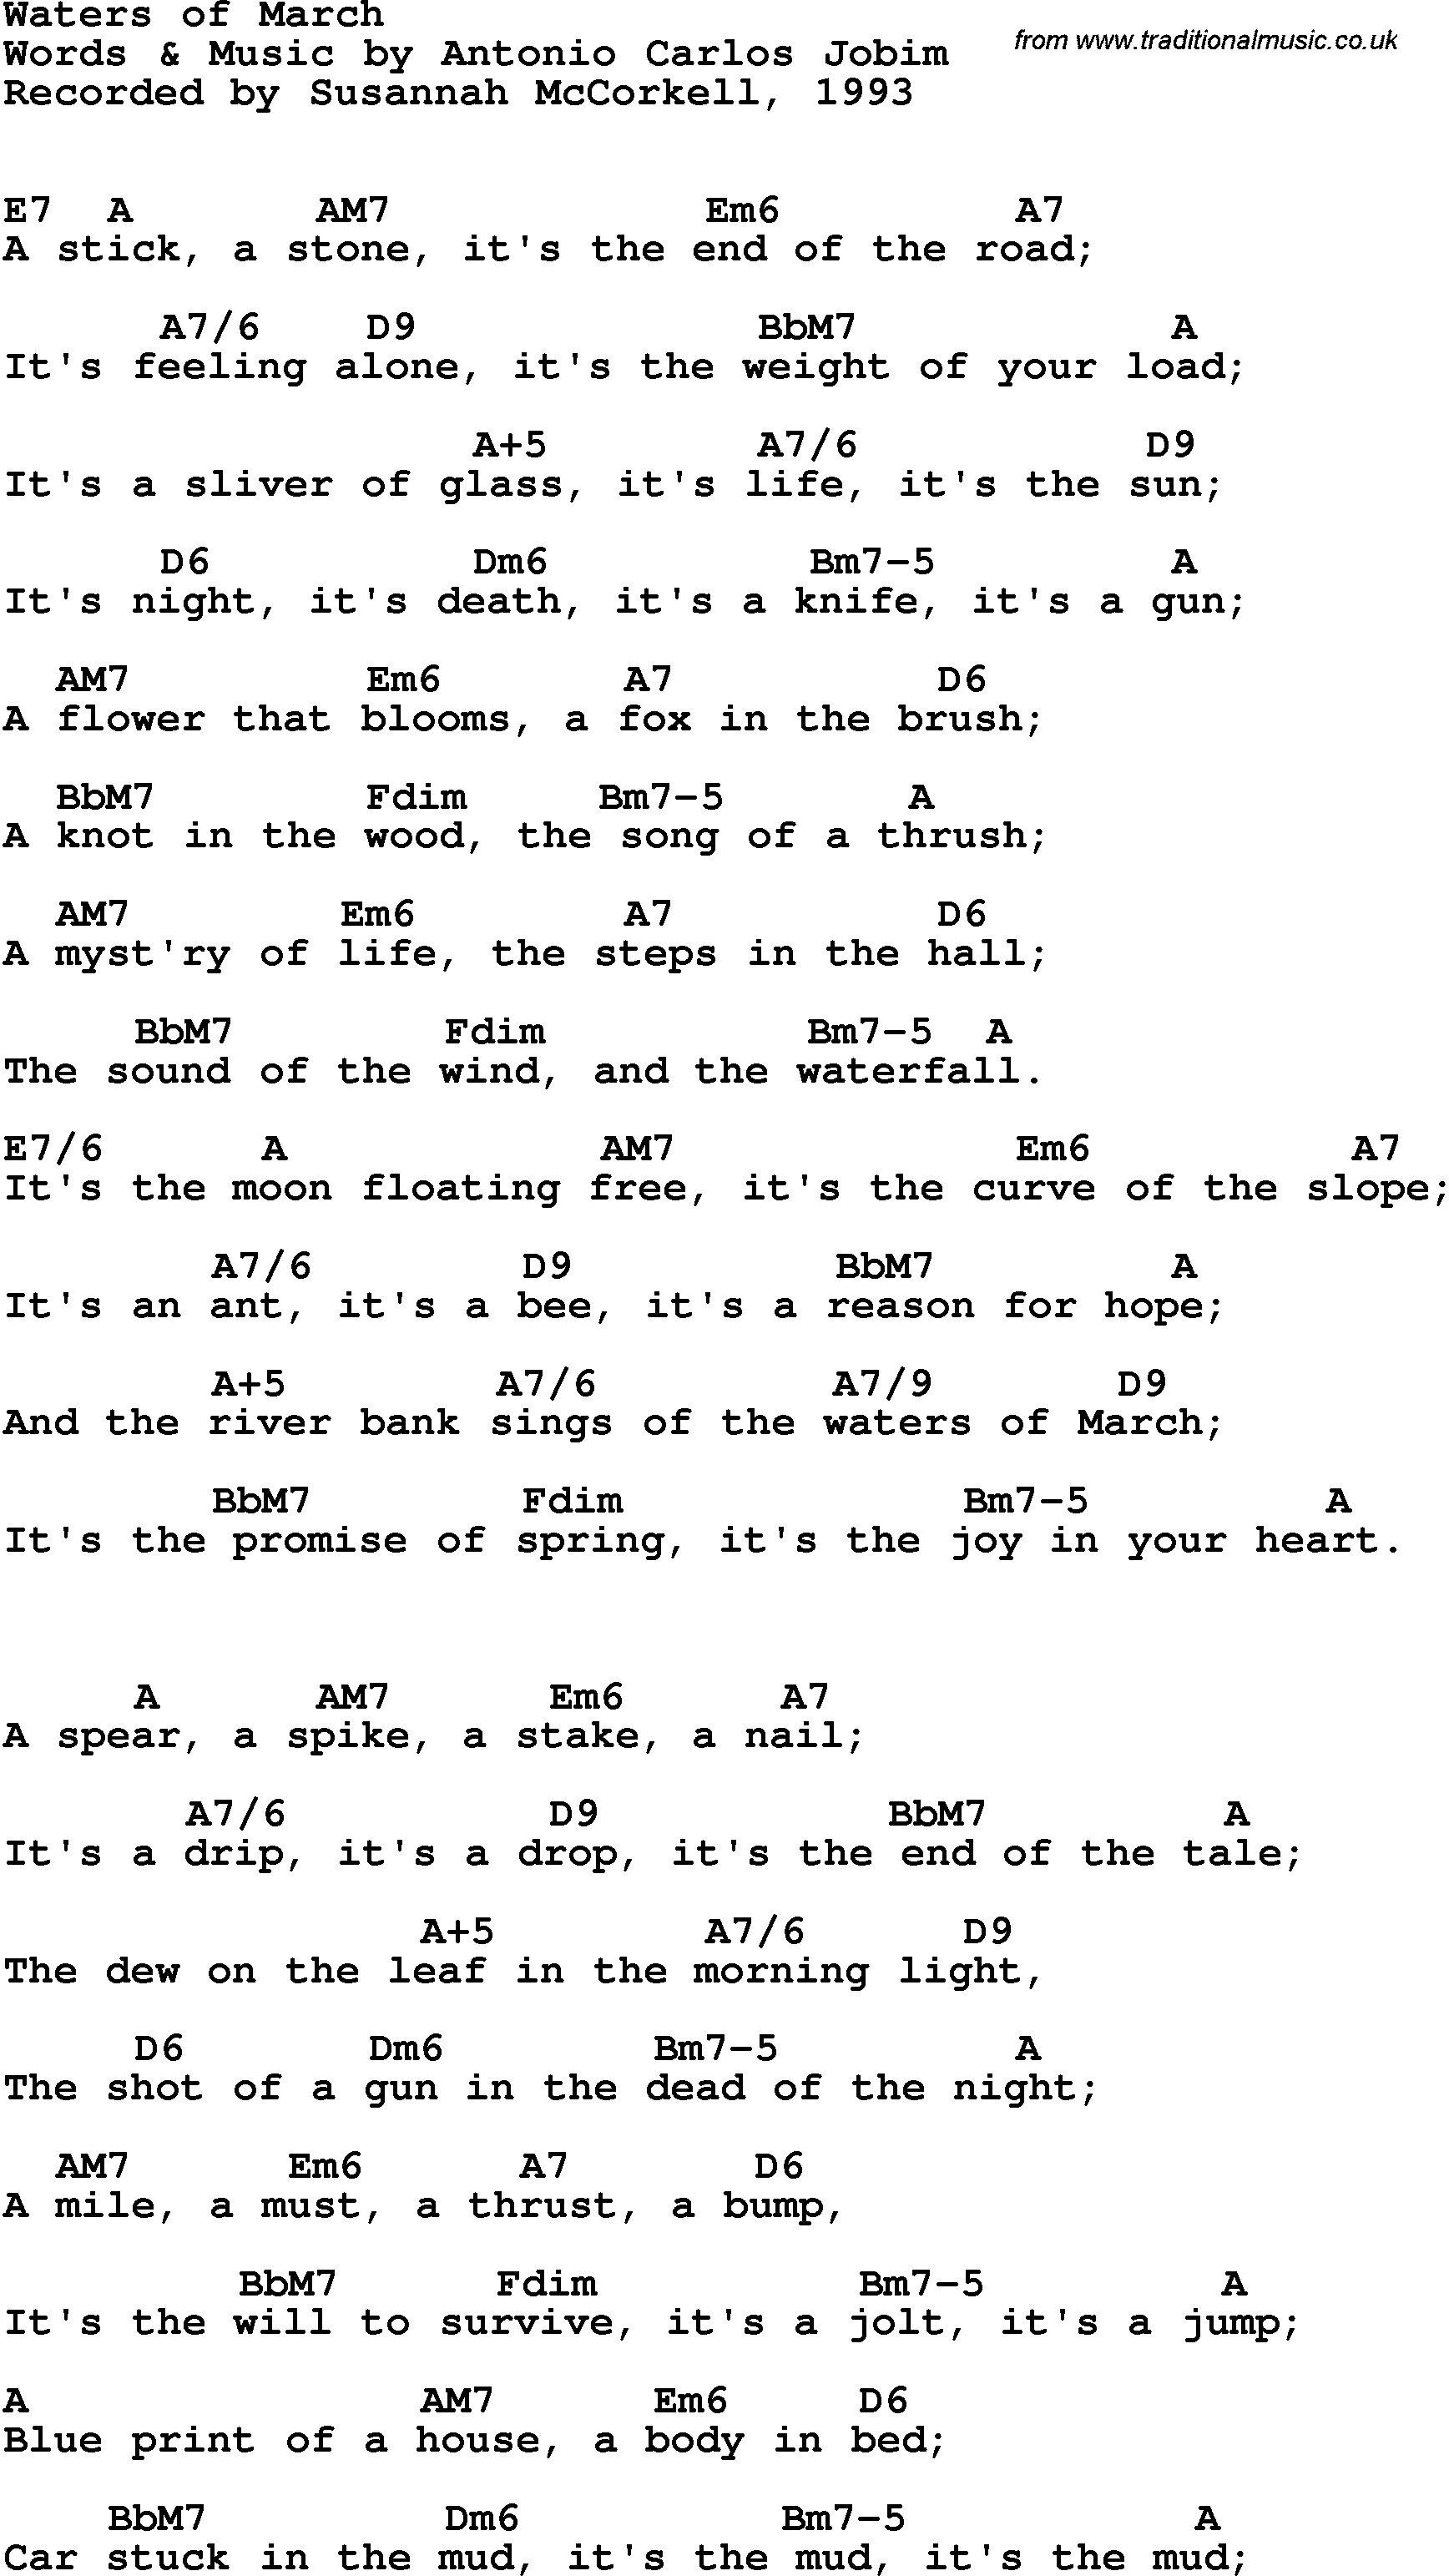 Song lyrics with guitar chords for Waters Of March - Susannah